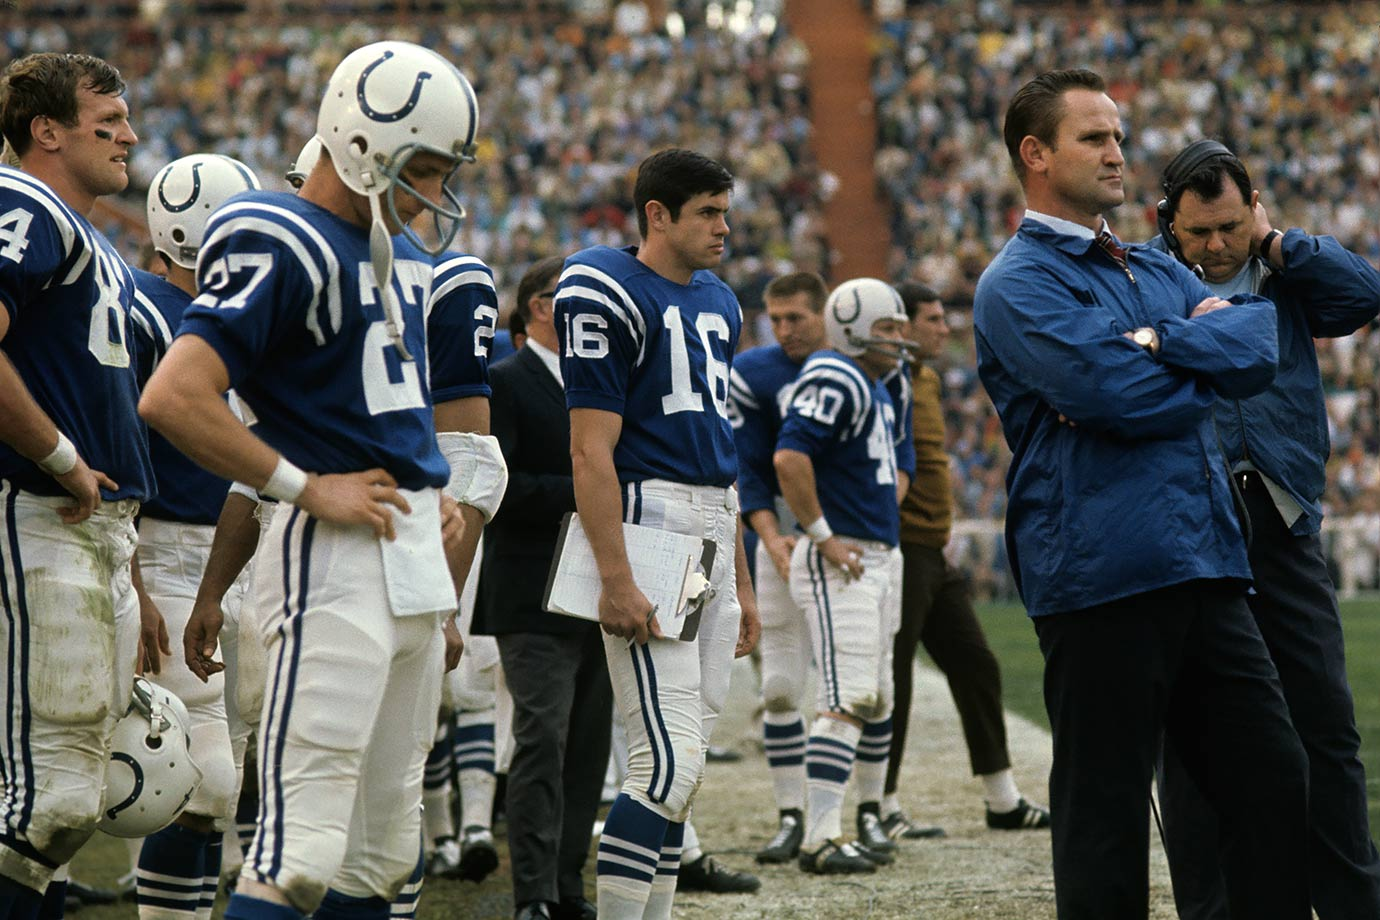 Jan. 12, 1969 — Super Bowl III: Baltimore Colts vs. New York Jets